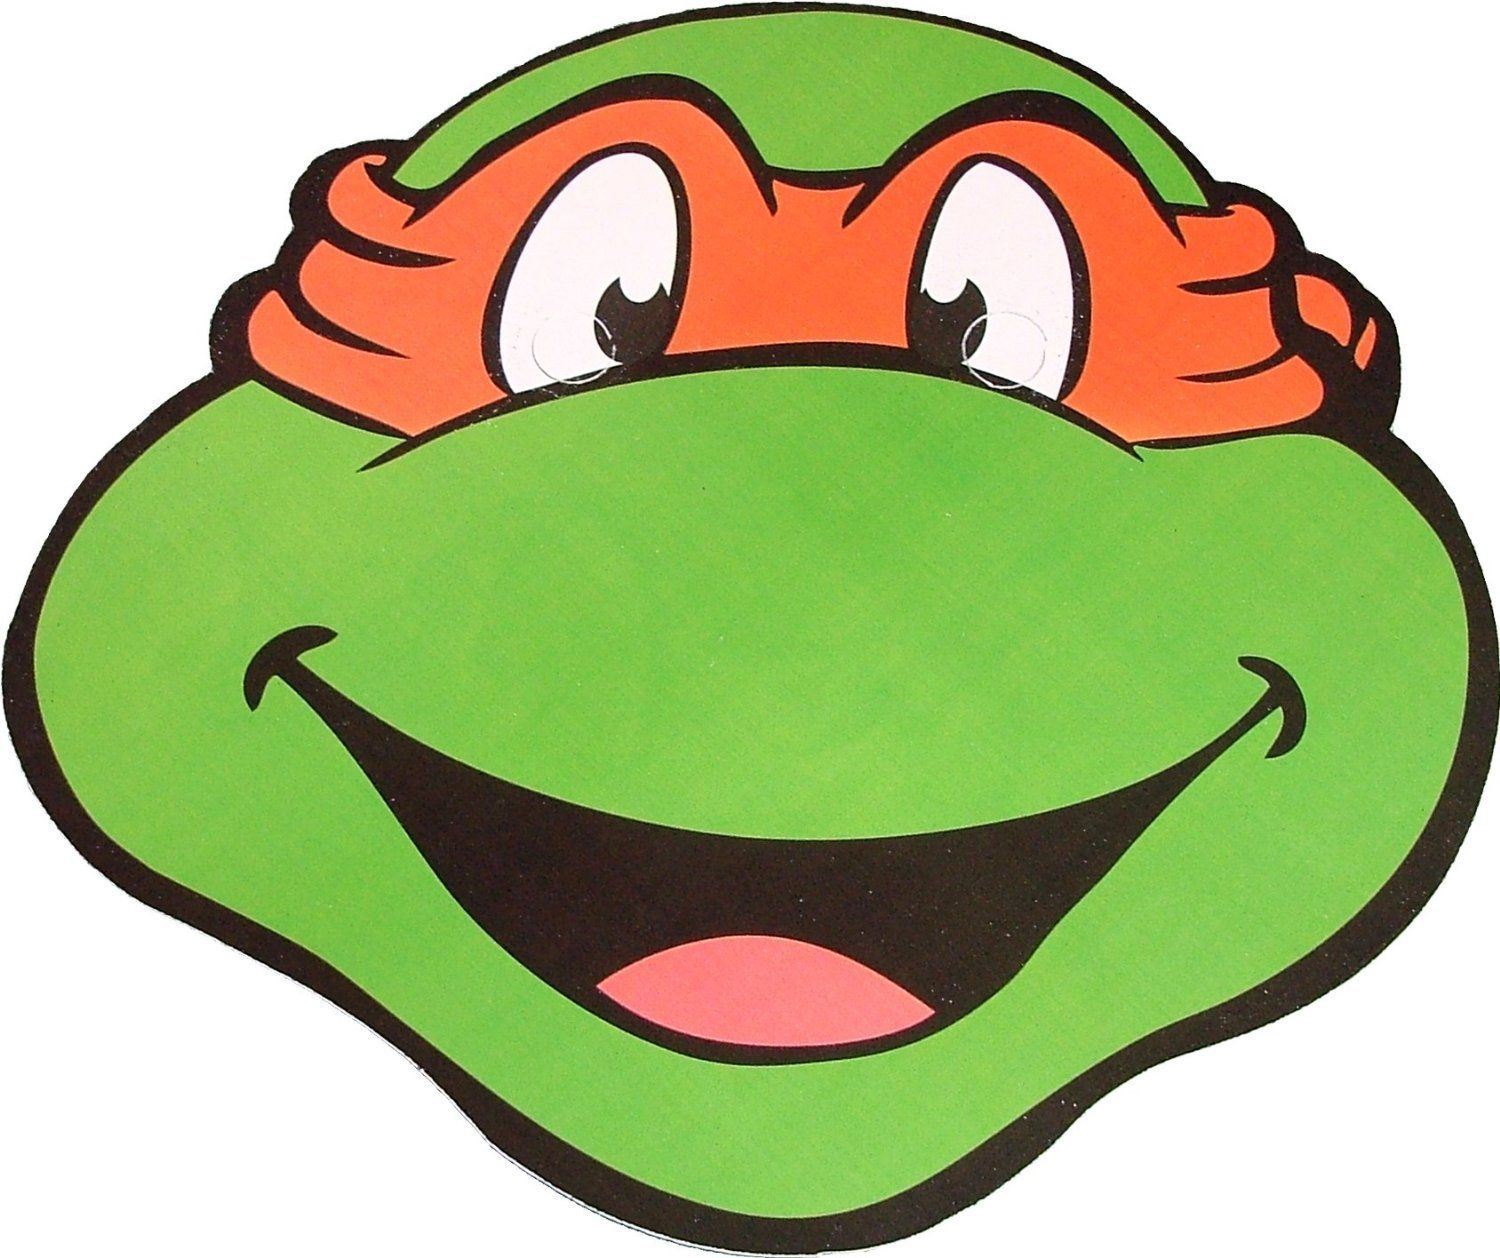 Ninja Turtles Face Pictures Free Cliparts That You Can Download To - Teenage Mutant Ninja Turtles Free Printable Mask